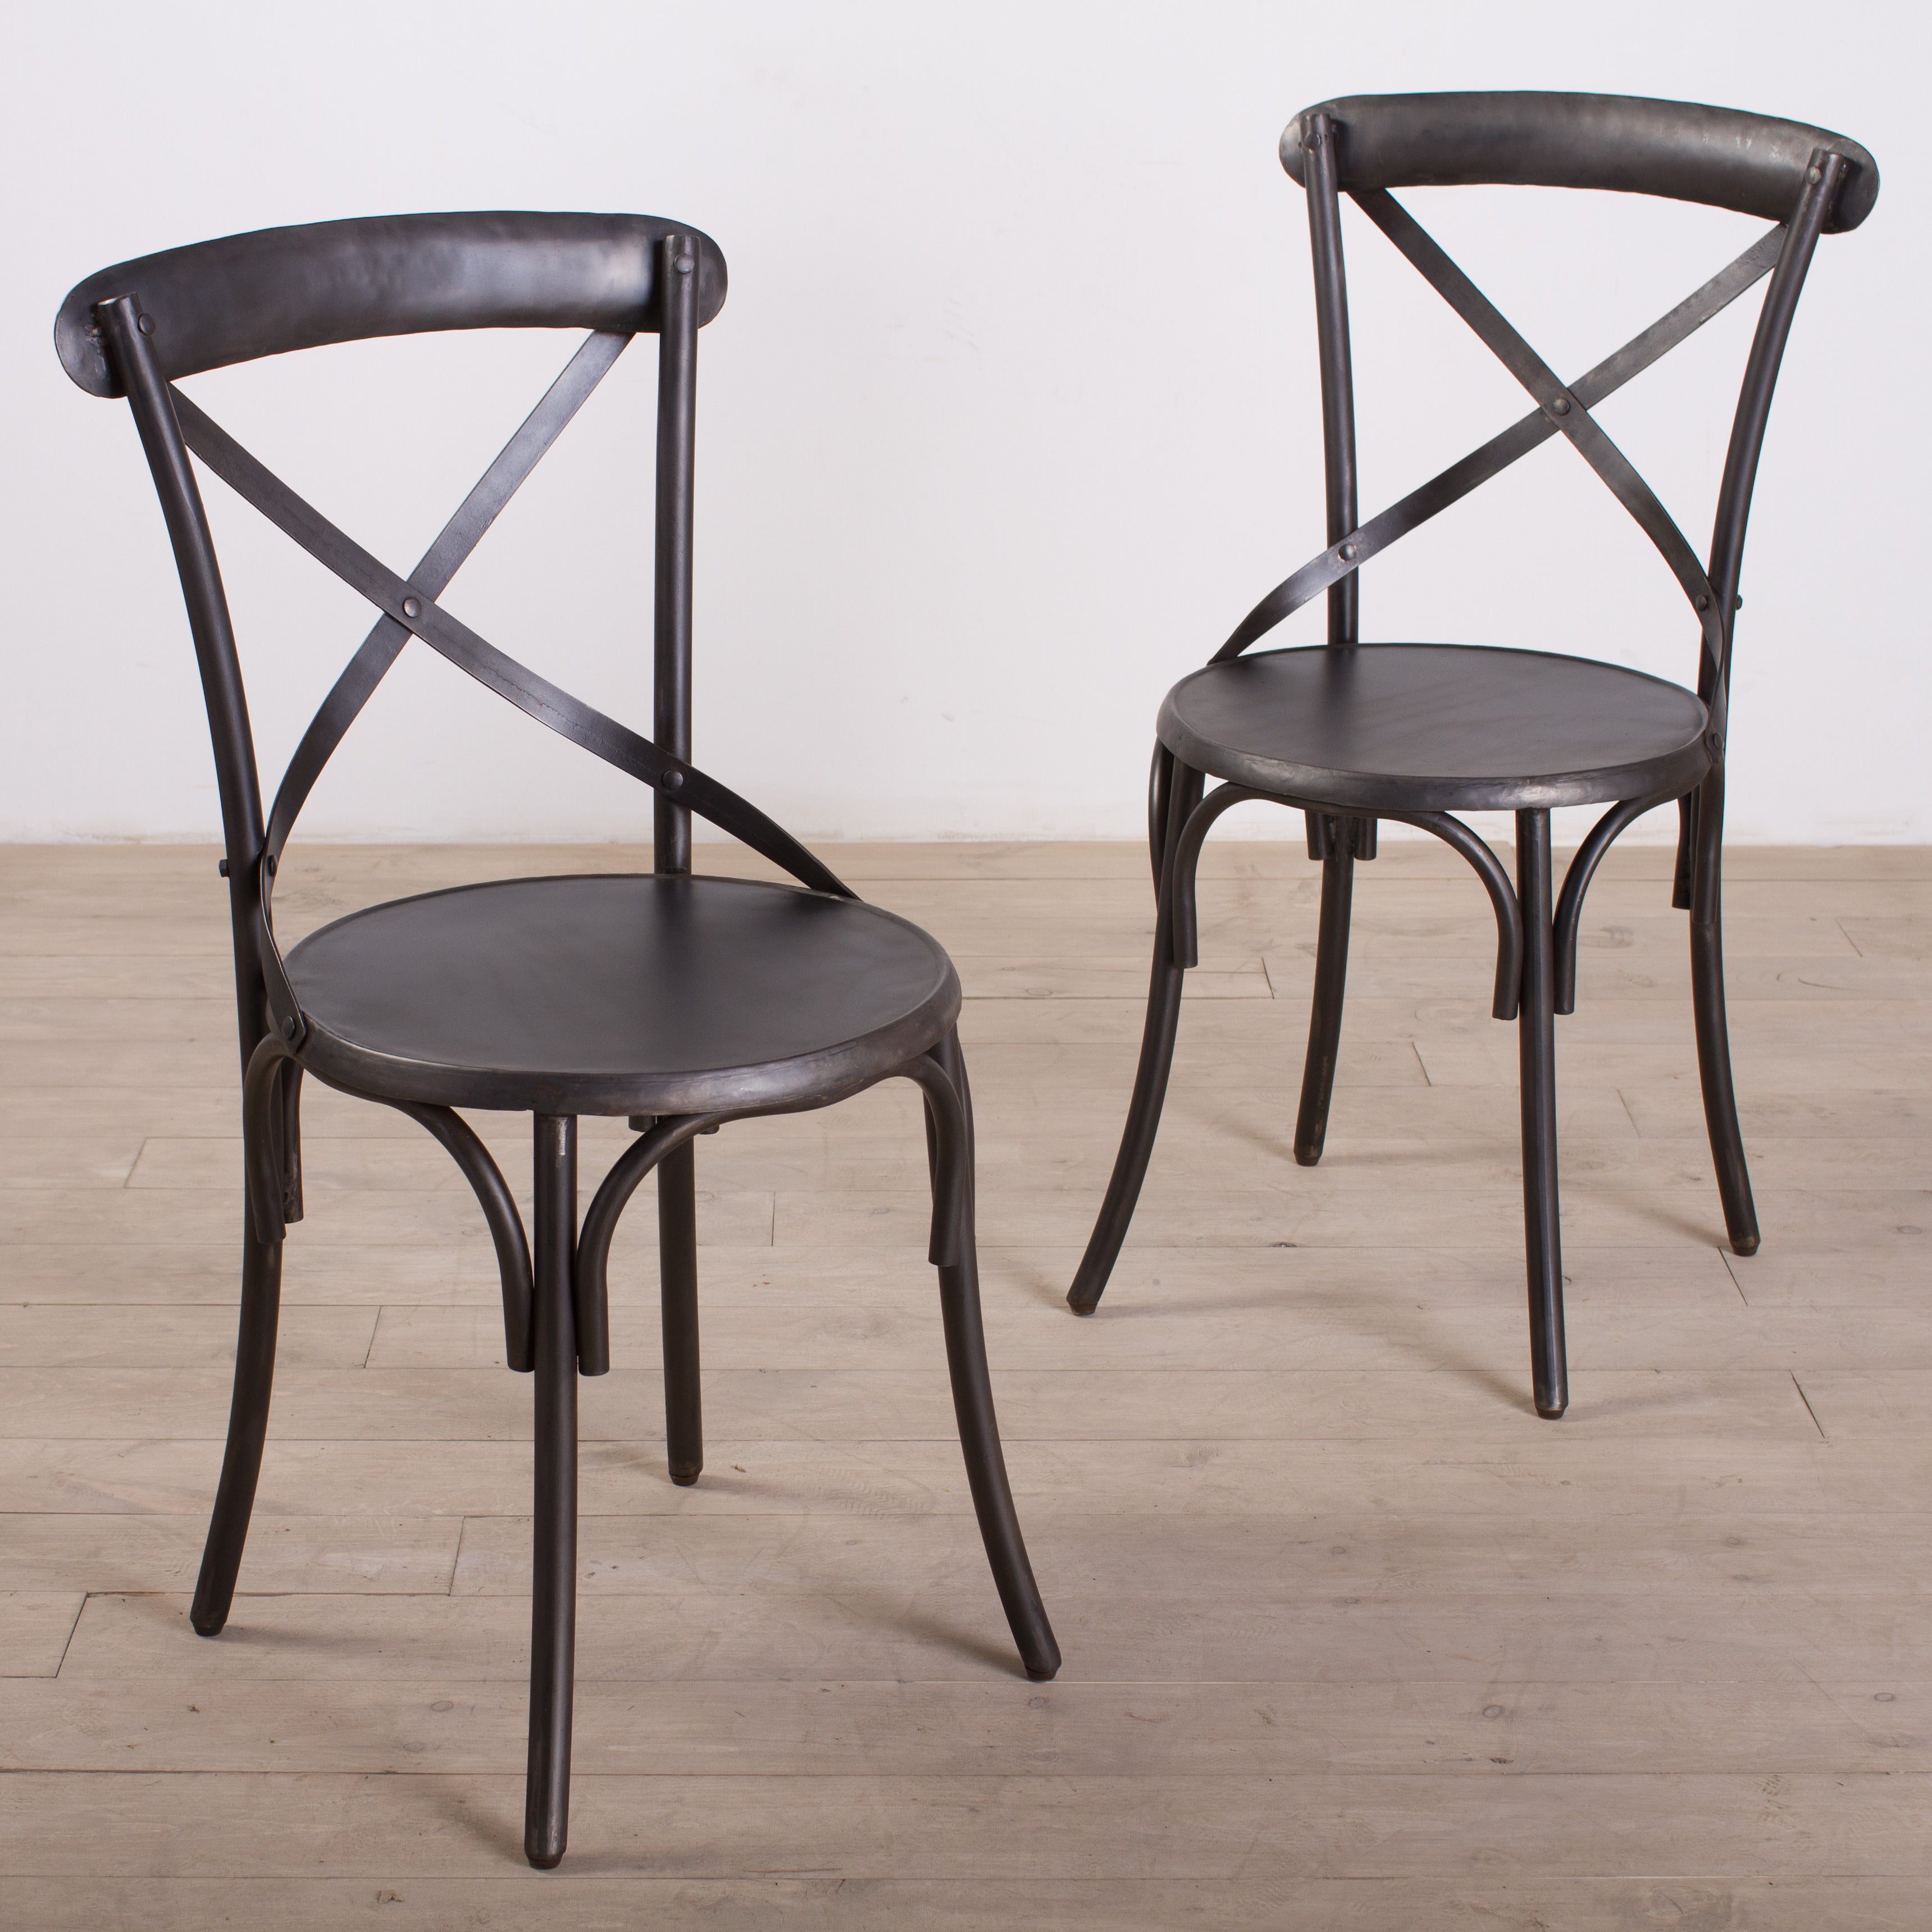 Metal Bistro Chairs Zinc Finish (Set of 2) - Overstock Shopping ...